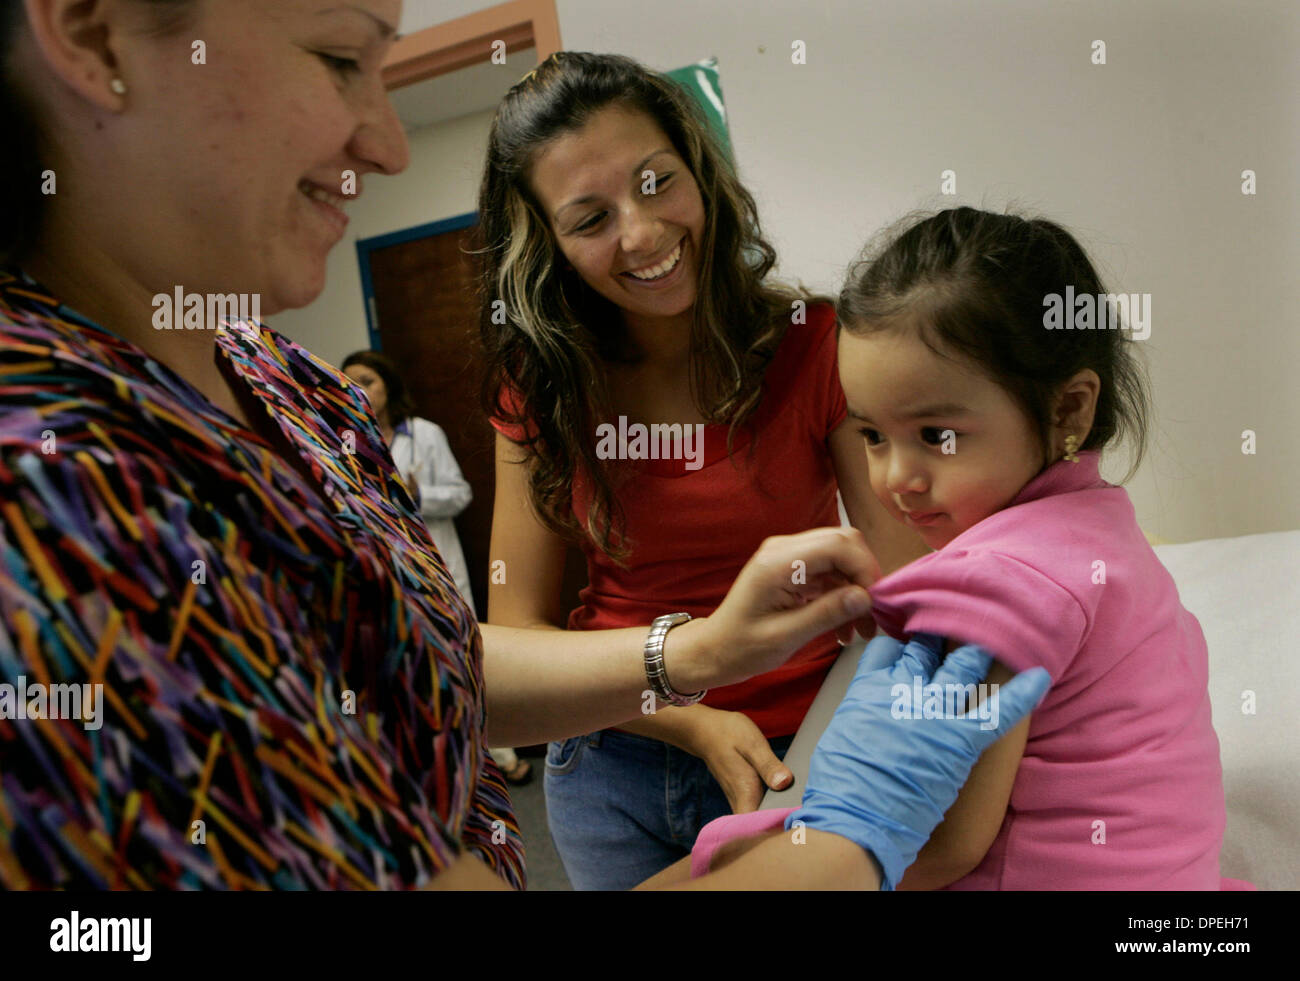 (Published 10/2/2005, Health & Wellness-4) Adriana Rucopo (cq), center, smiles at her daughter Camille Rico's - Stock Image